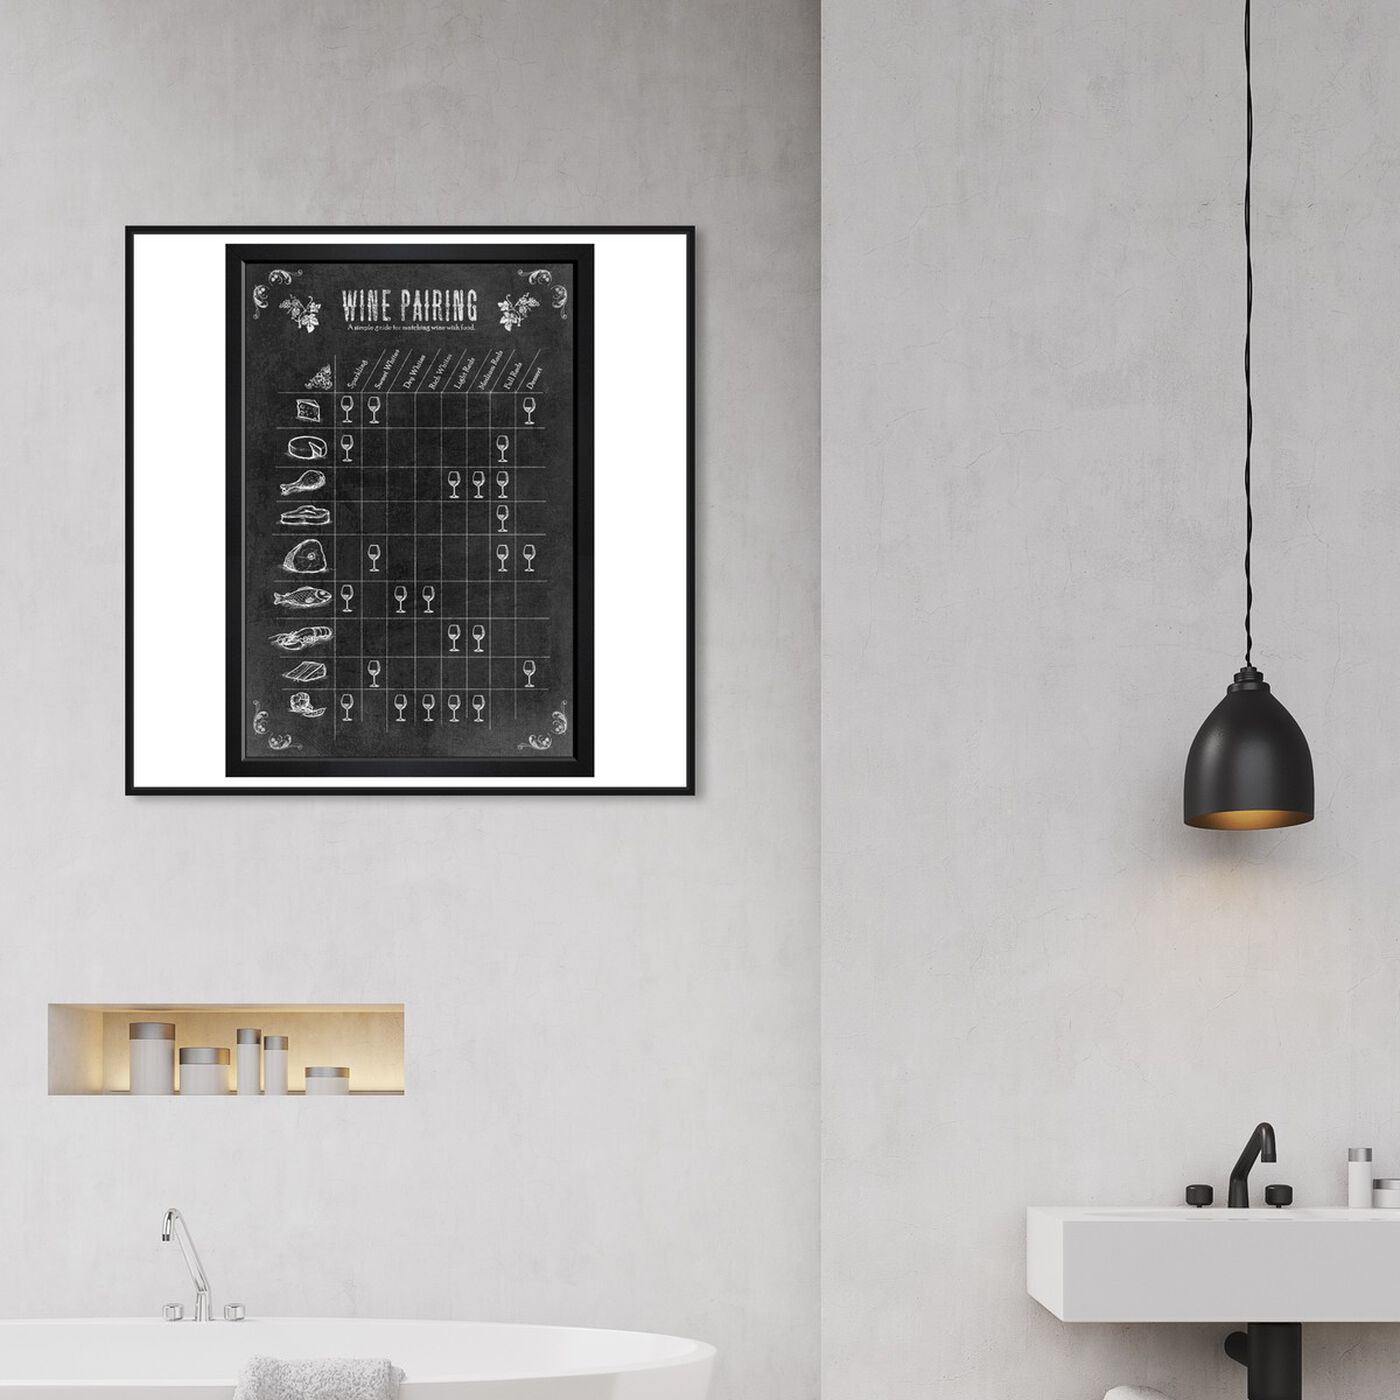 Hanging view of Wine Pairing Guide featuring drinks and spirits and wine art.